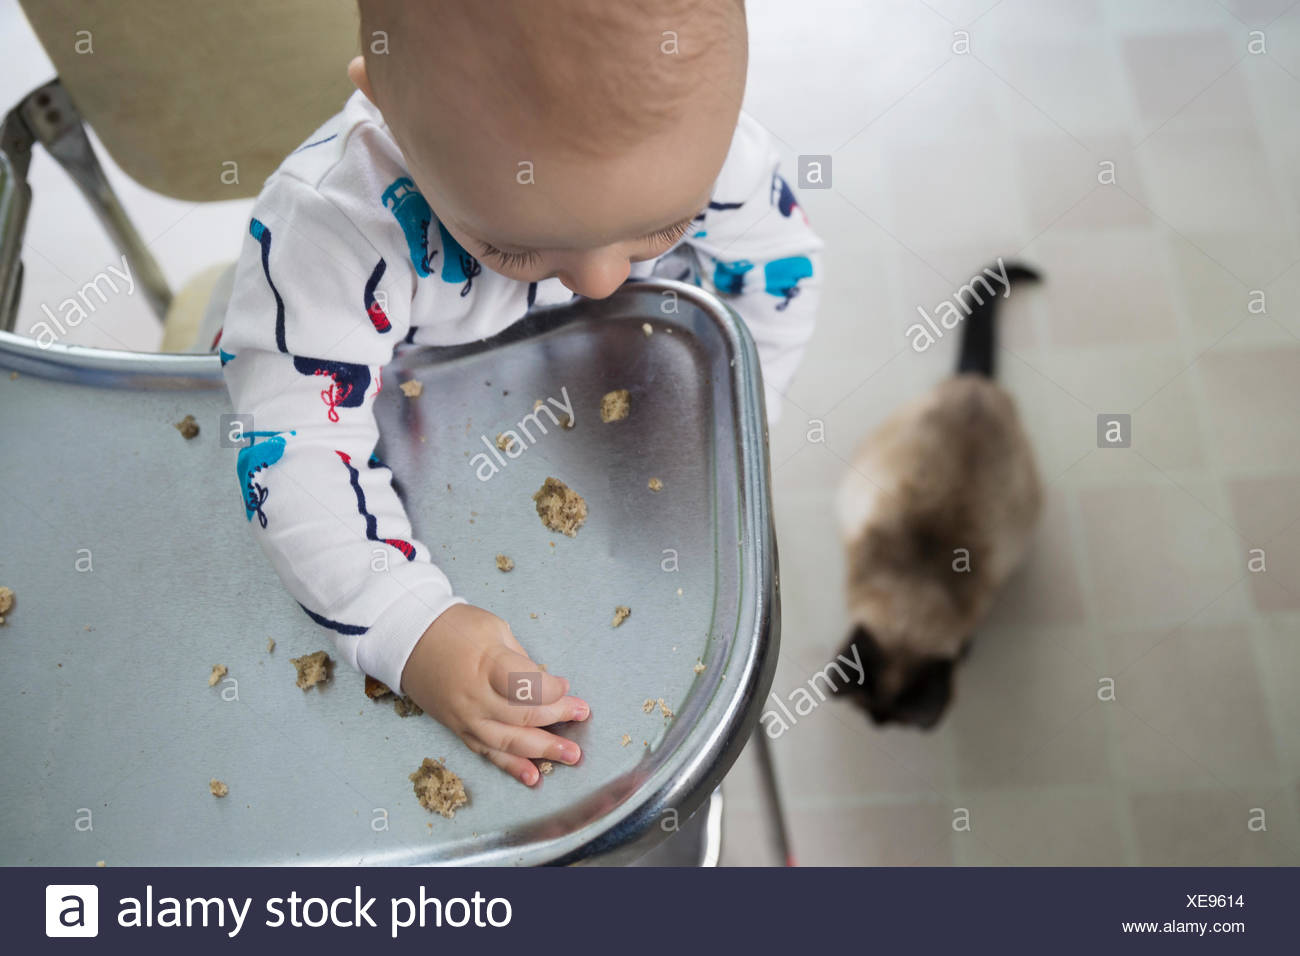 high chair food catcher white accent ojibwe stock photos and images alamy